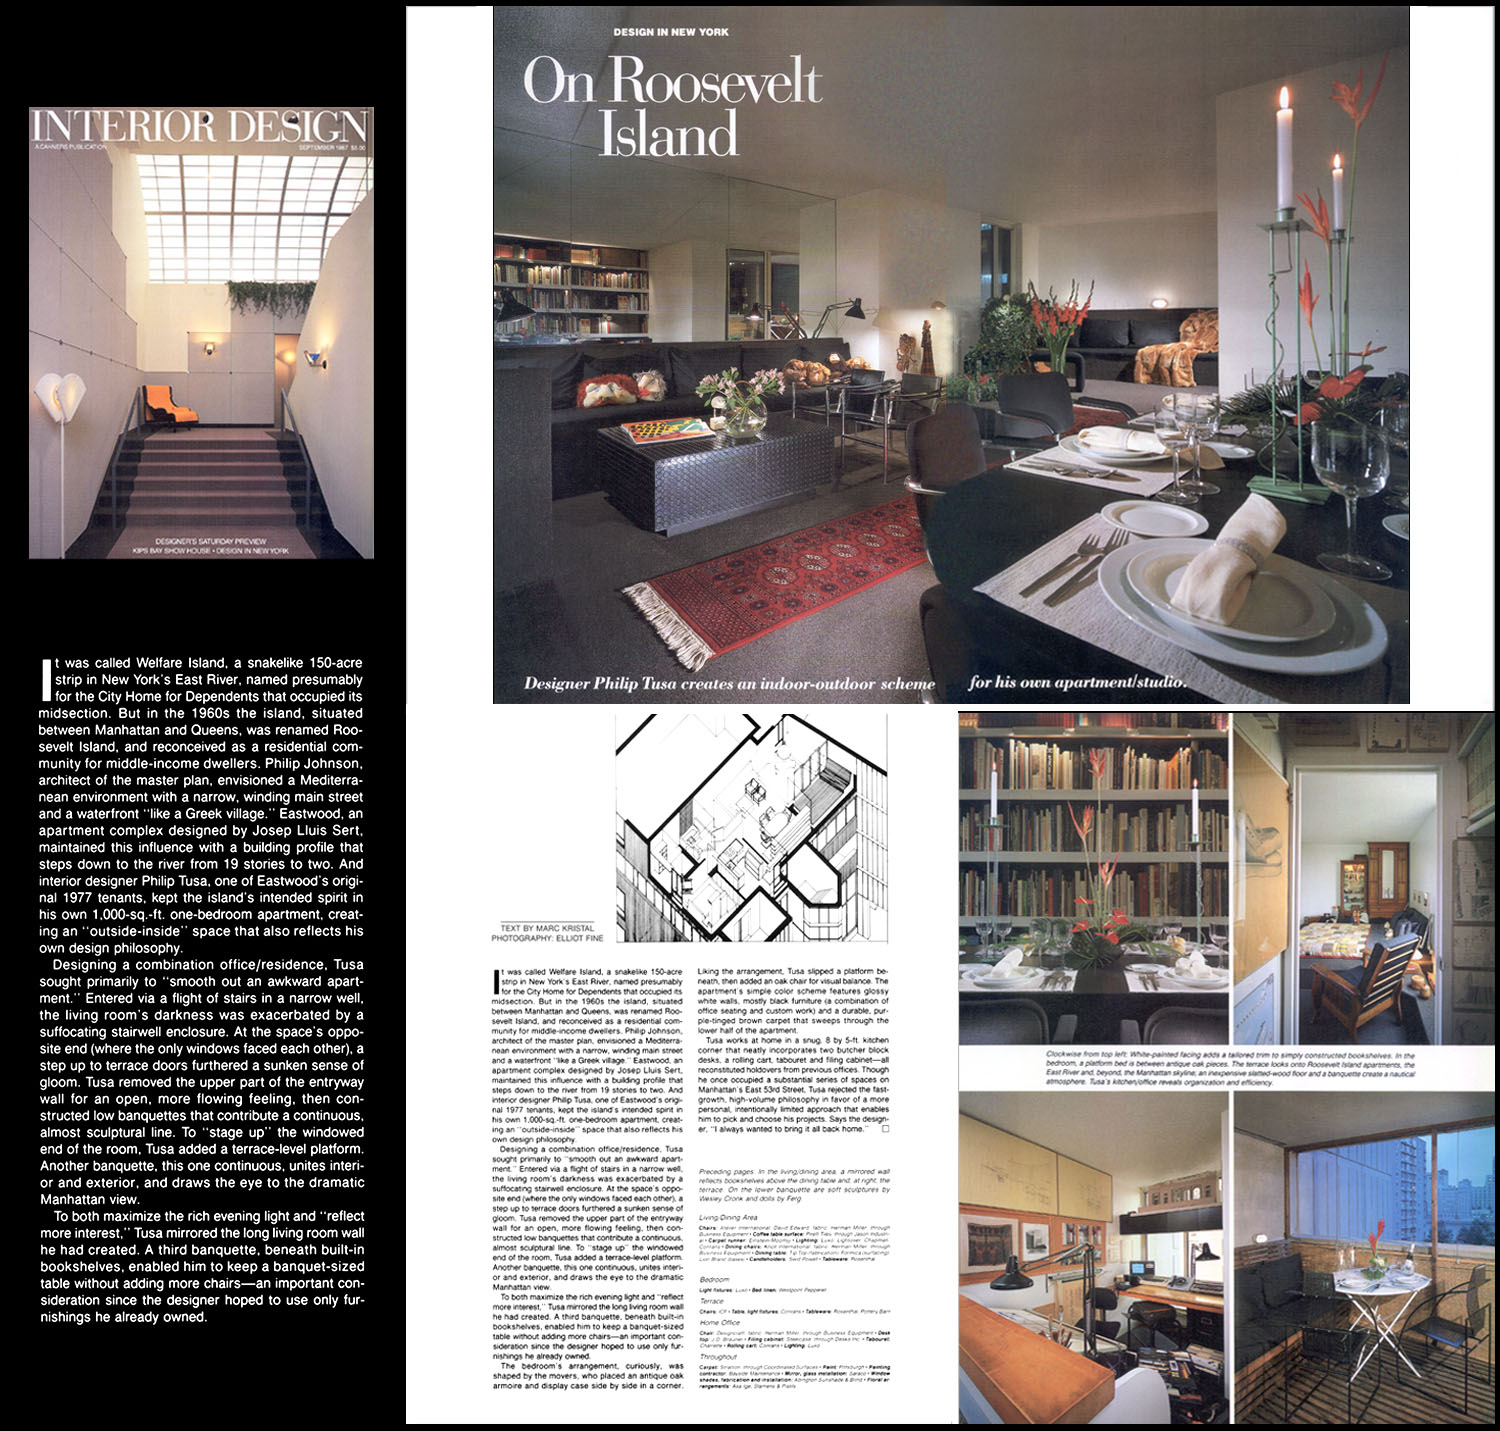 Interior Design Magazine Article (9/87) pg 274; Roosevelt Island Apartment